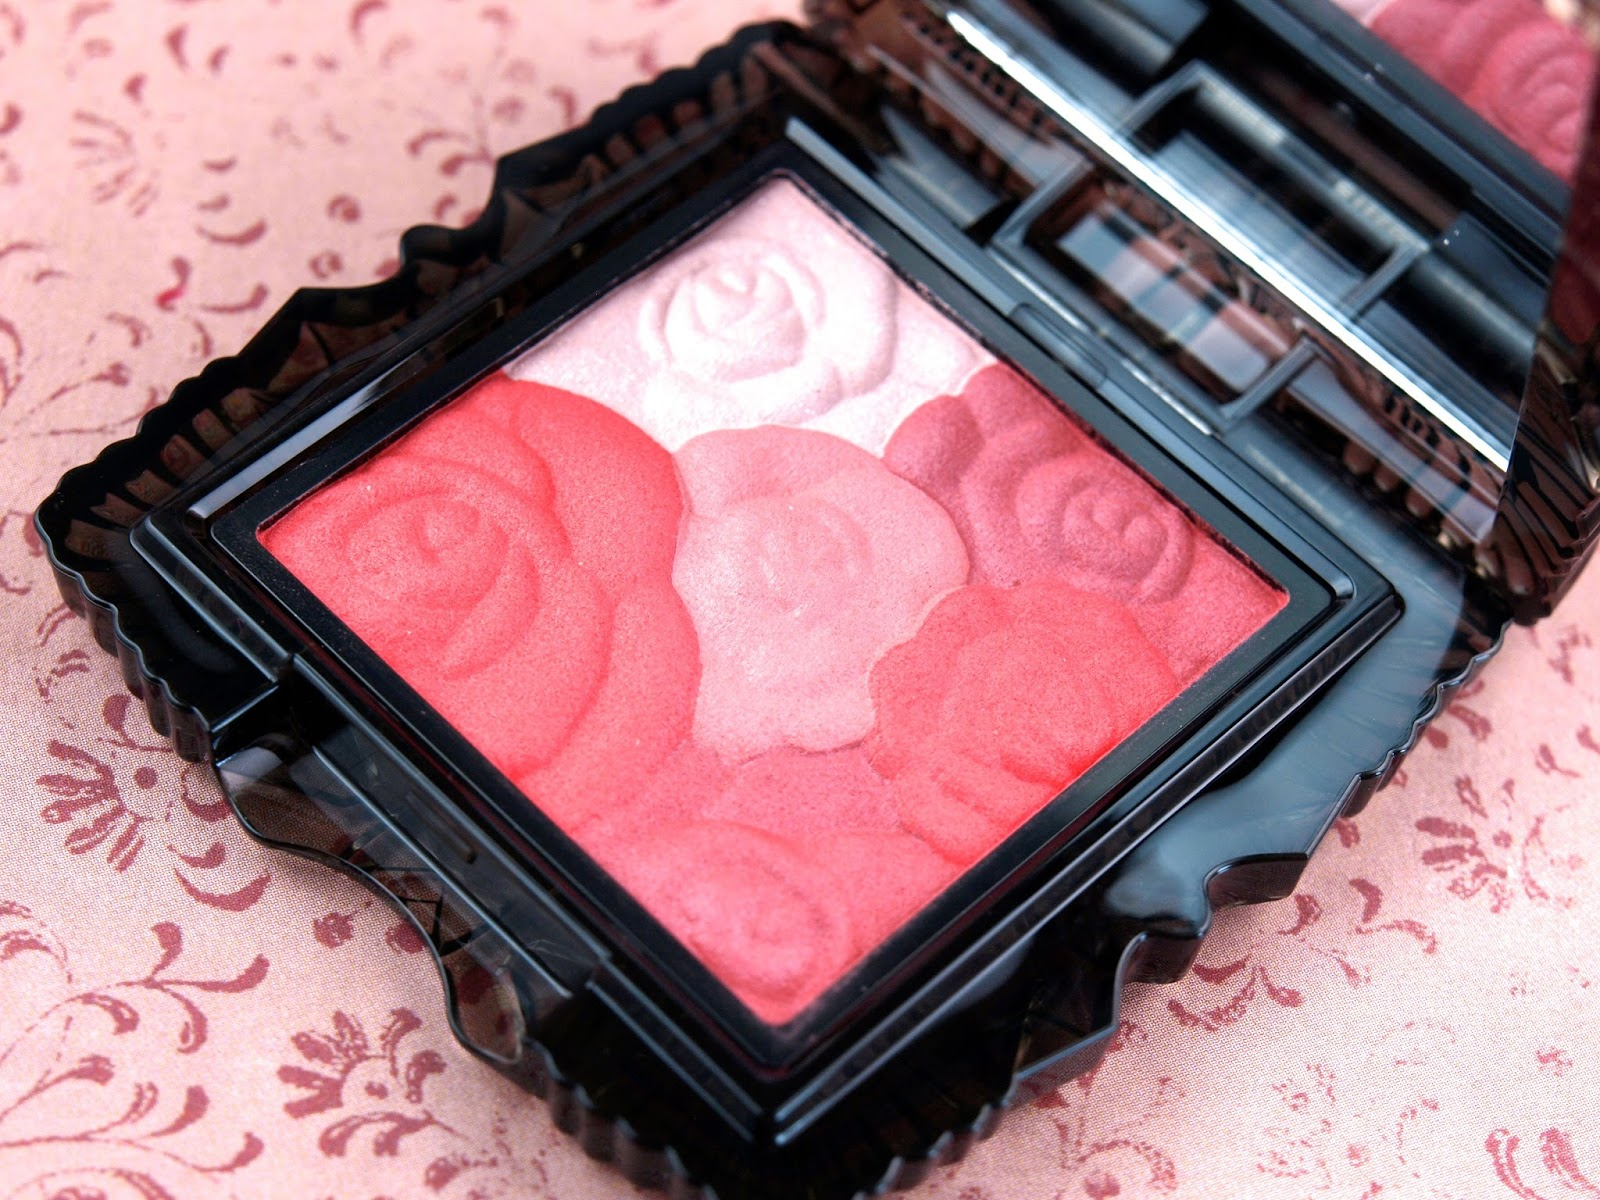 Anna Sui Fall 2014 Lipstick M & Rose Cheek Color: Review and Swatches